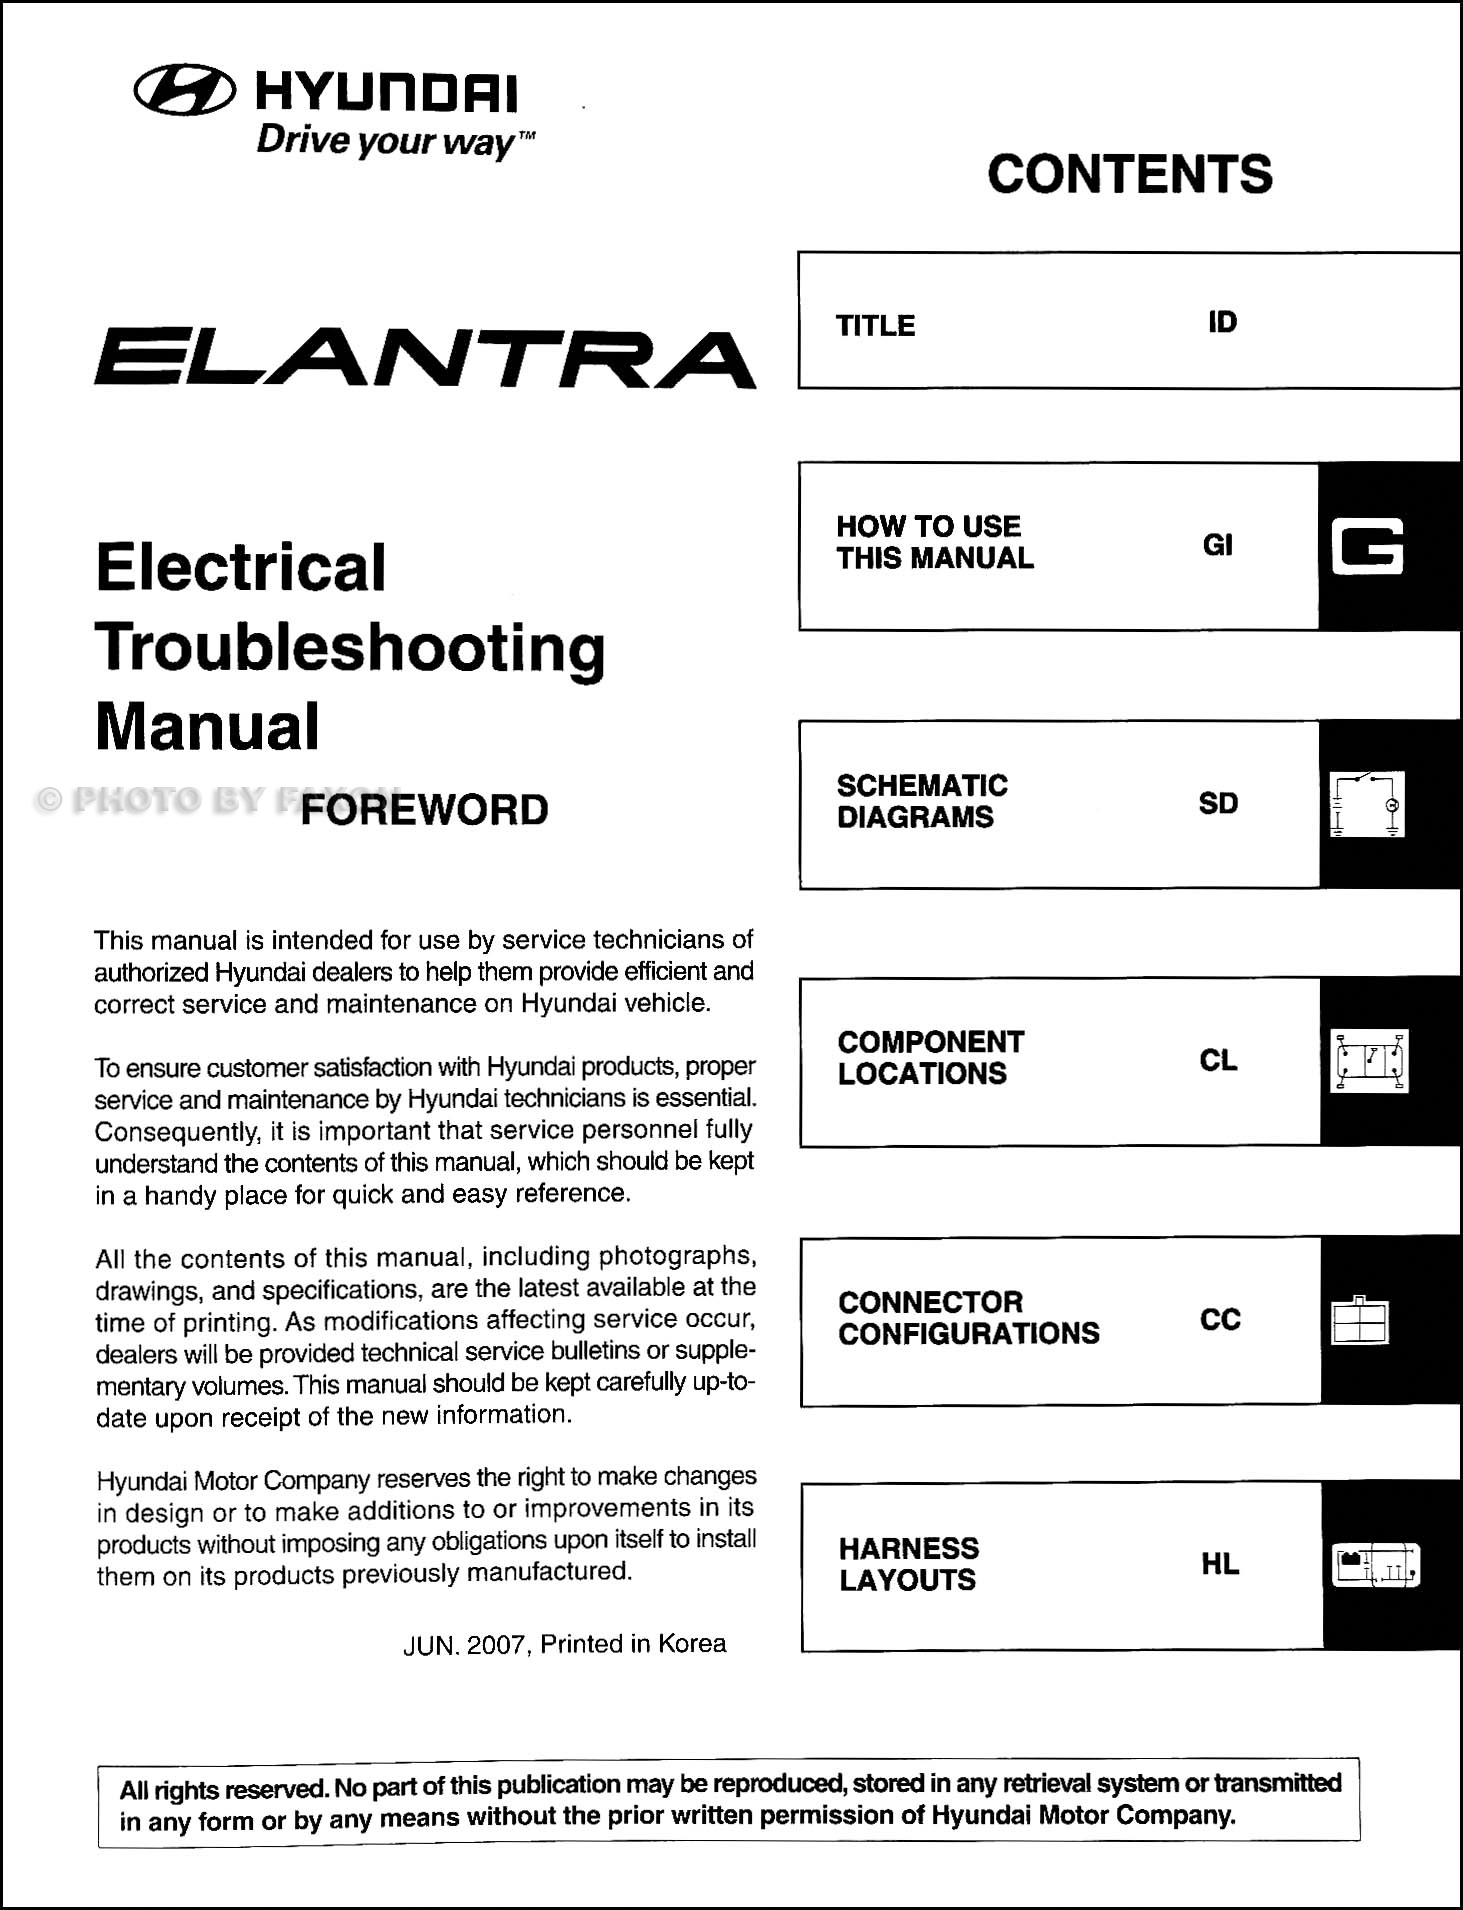 2007 hyundai elantra wiring schematic automotive wiring diagram rh seigokanengland co uk 2014 hyundai santa fe wiring diagram pdf